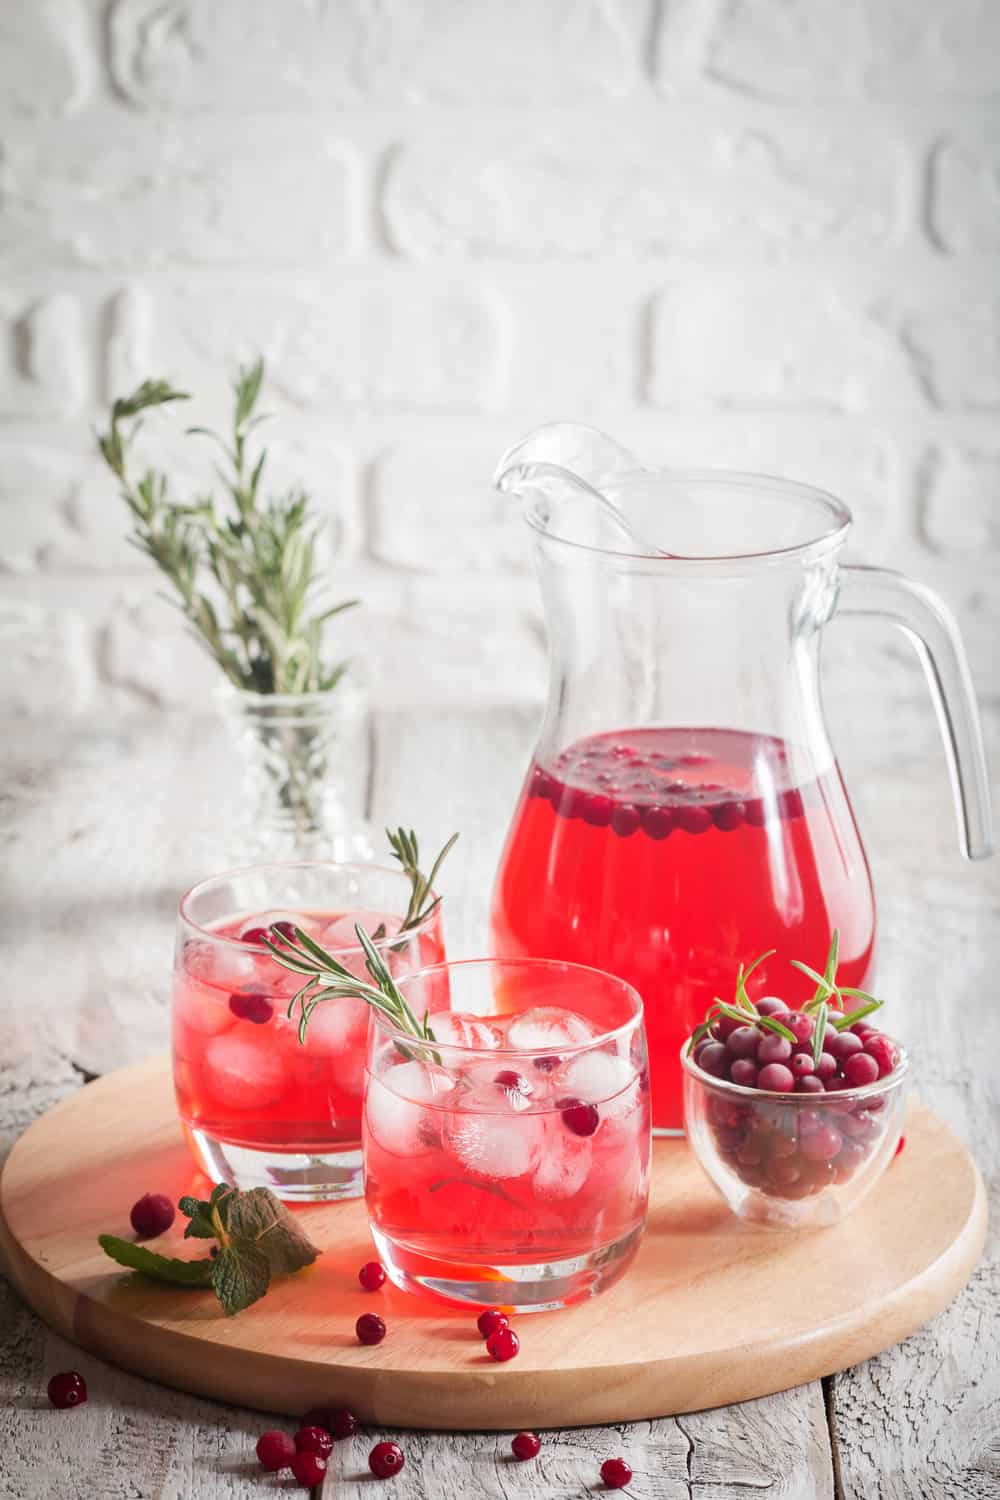 5 Tips to Store Cranberry Juice